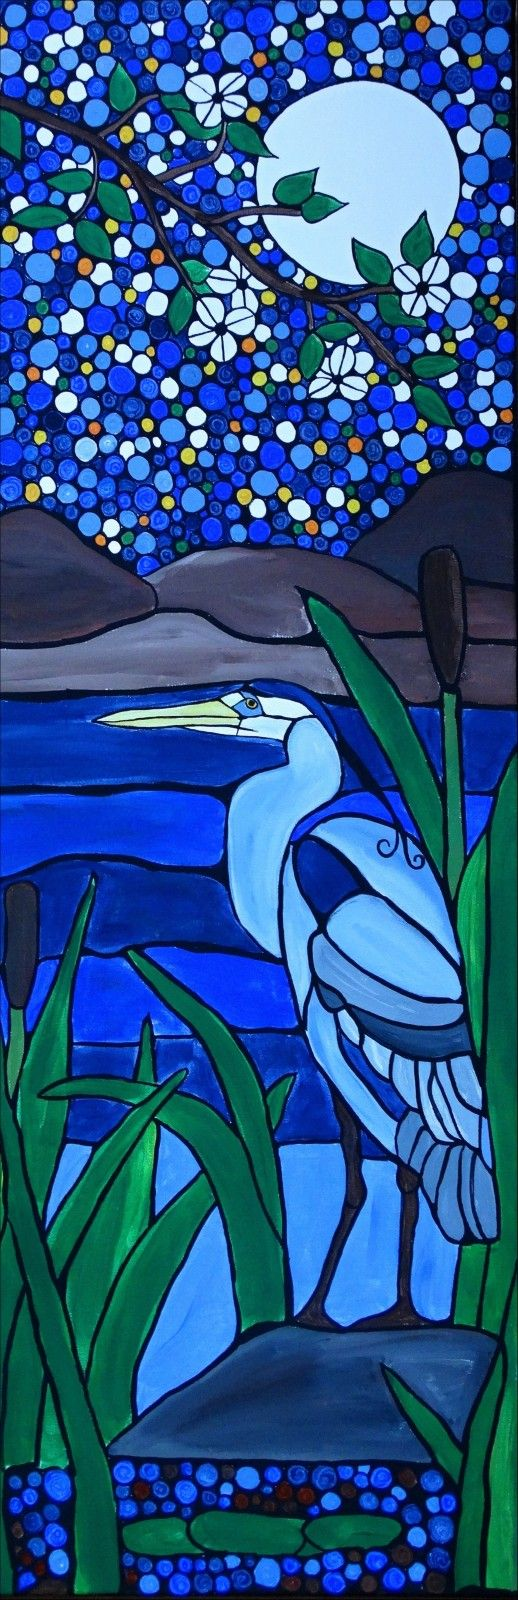 Colorful landscape with a blue heron on this delightful artwork with a mosaic appeal.